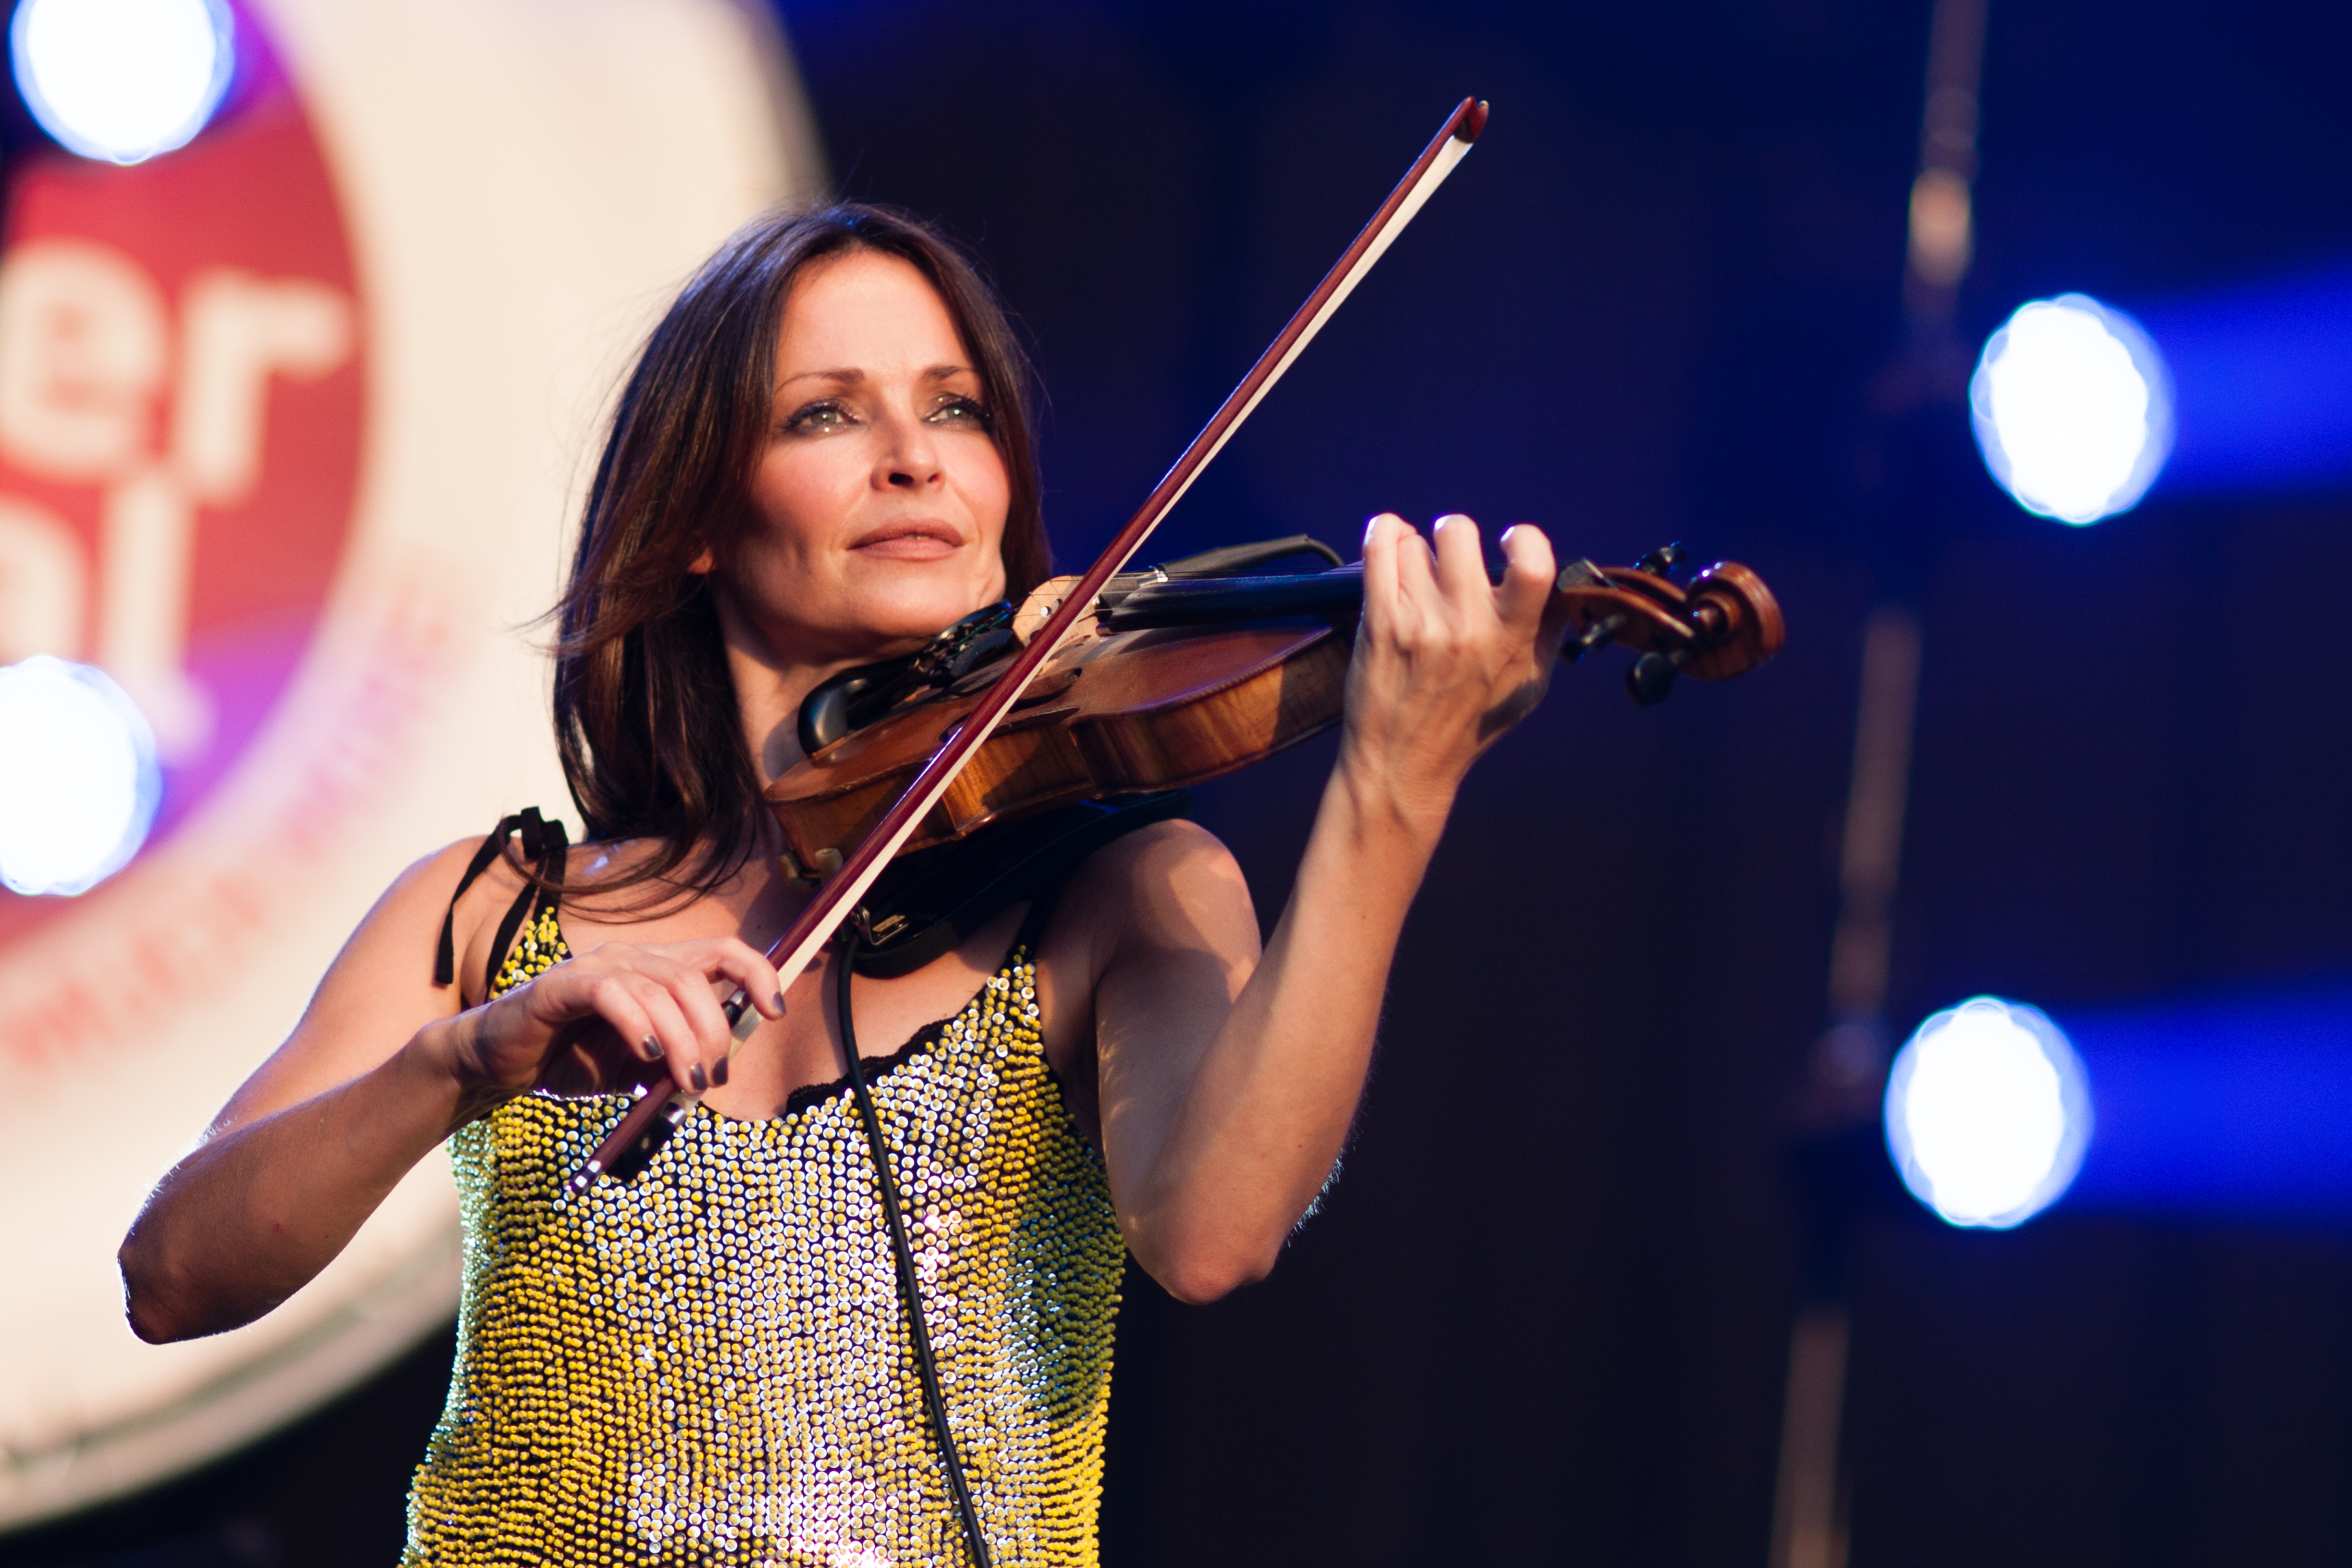 Sharon corr @ brussels summer festival 2012 photo